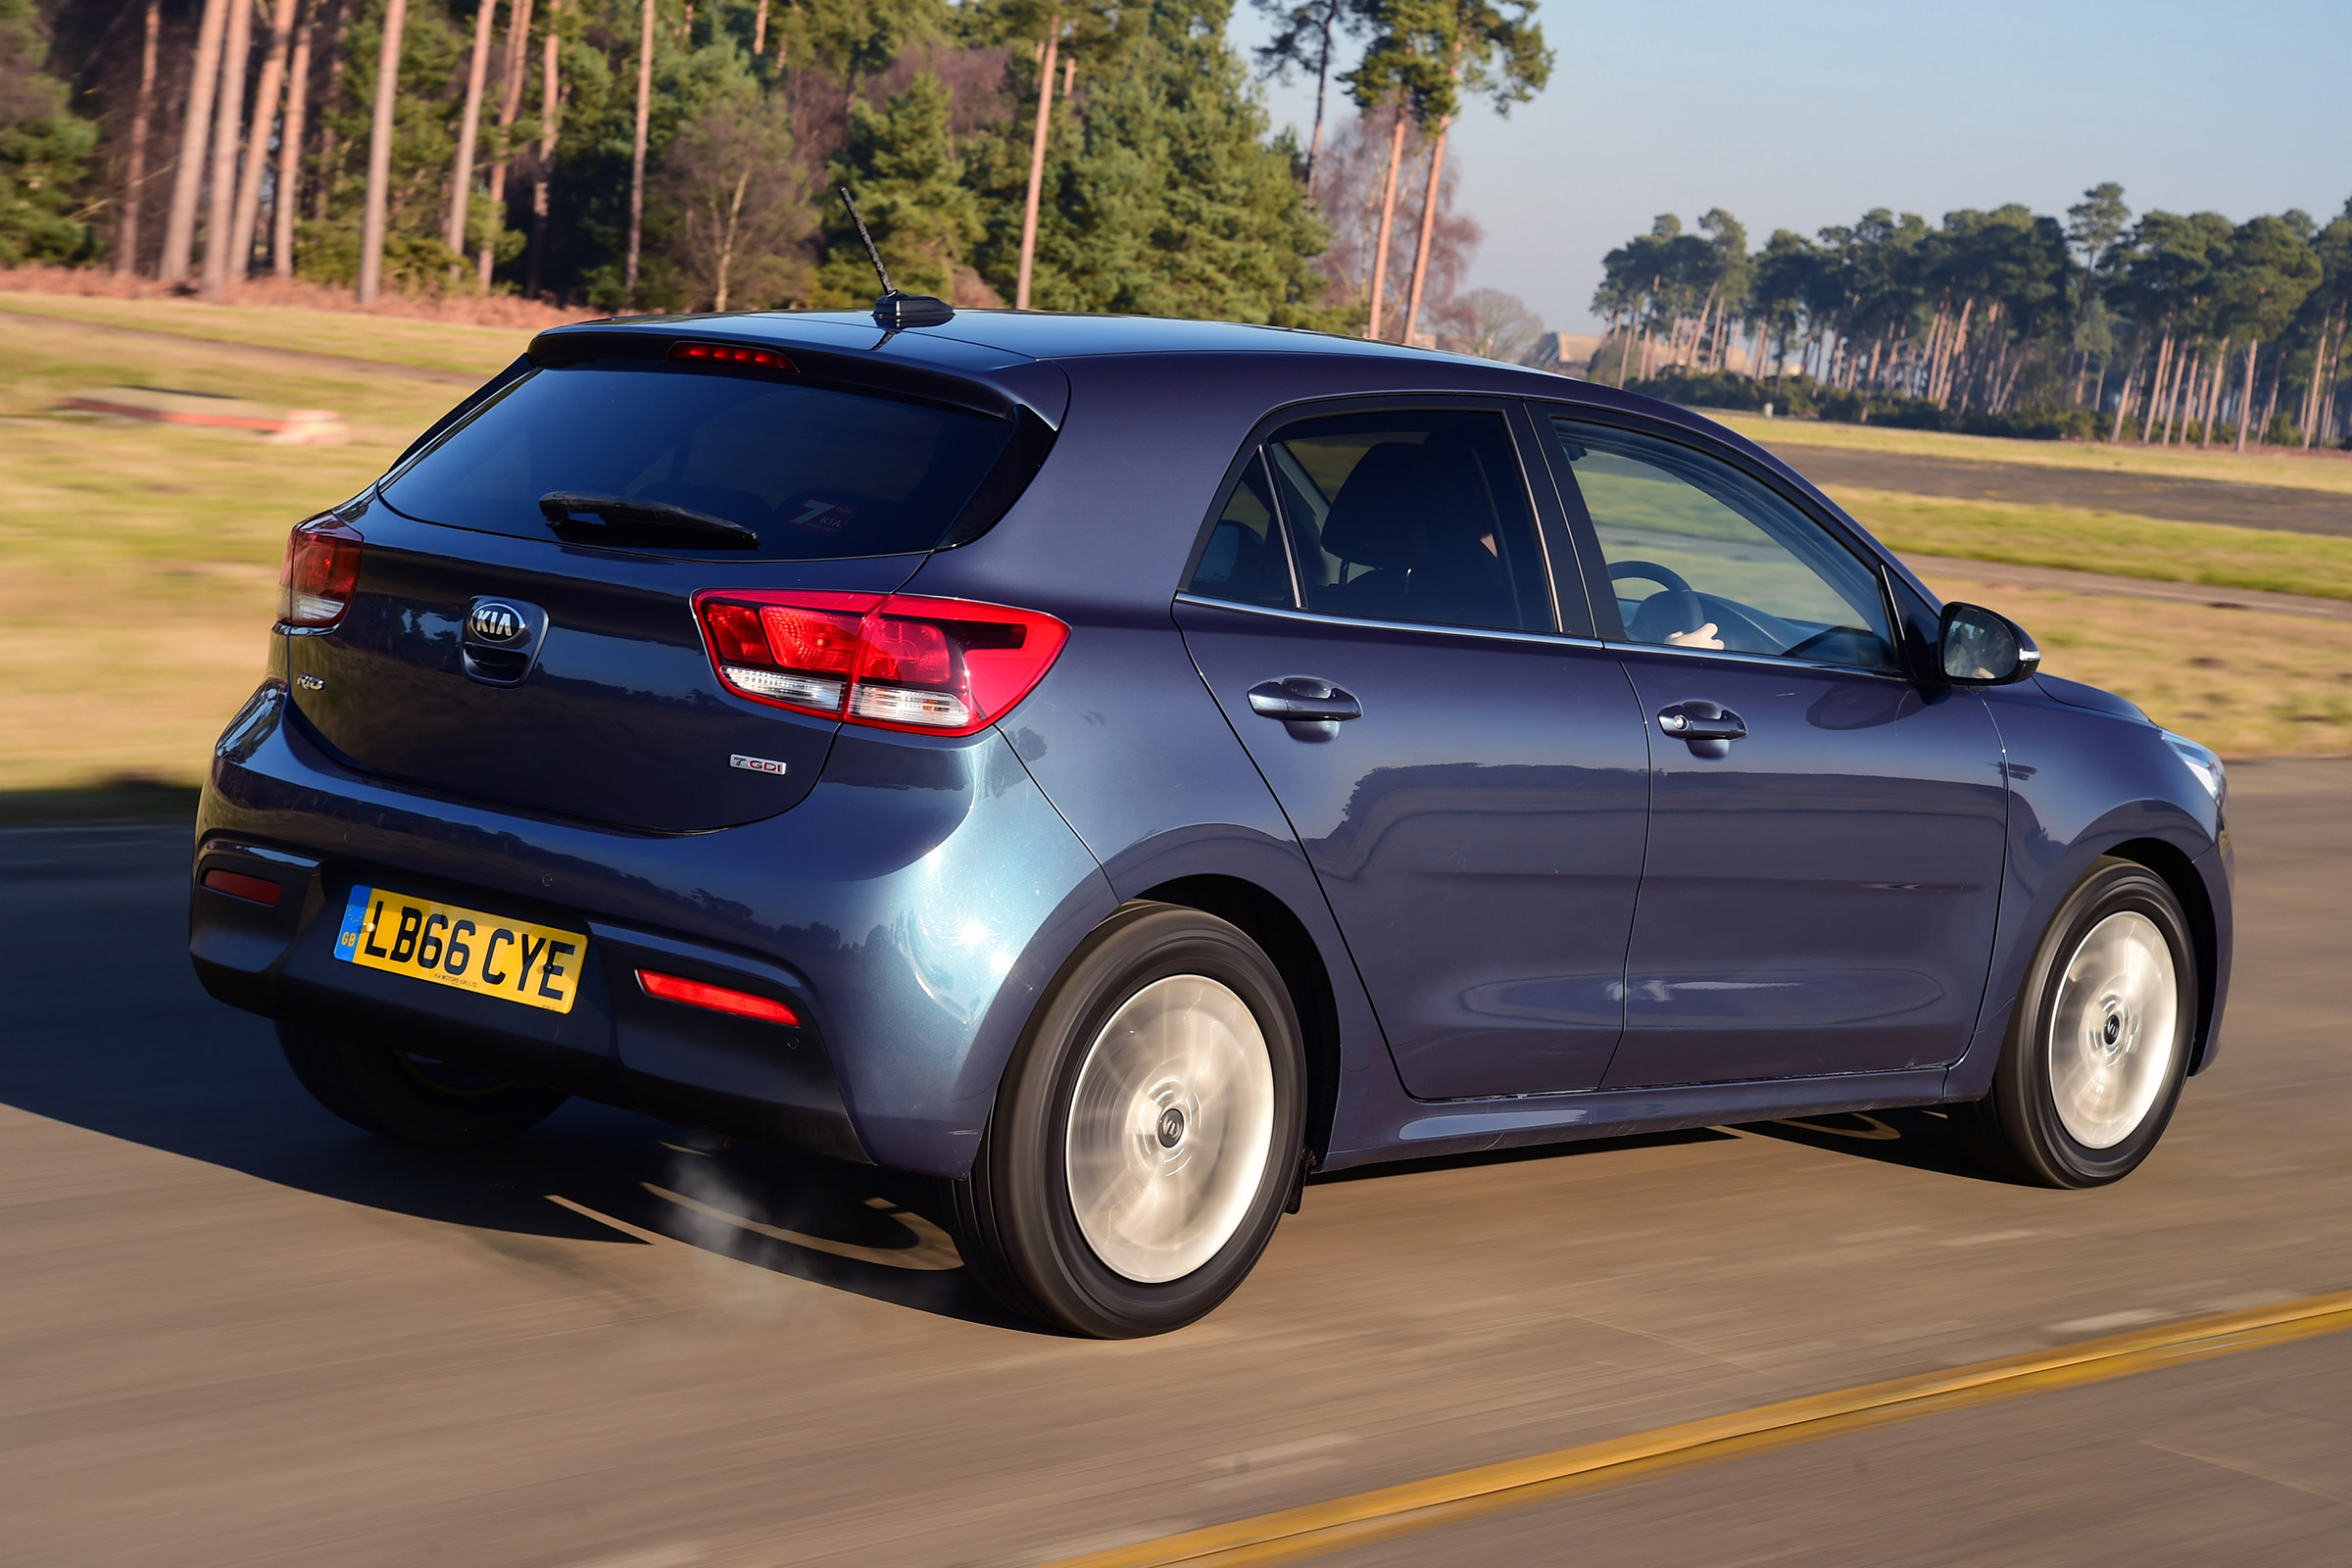 2017 Kia Rio Test Drive Rear And Side View (View 27 of 49)